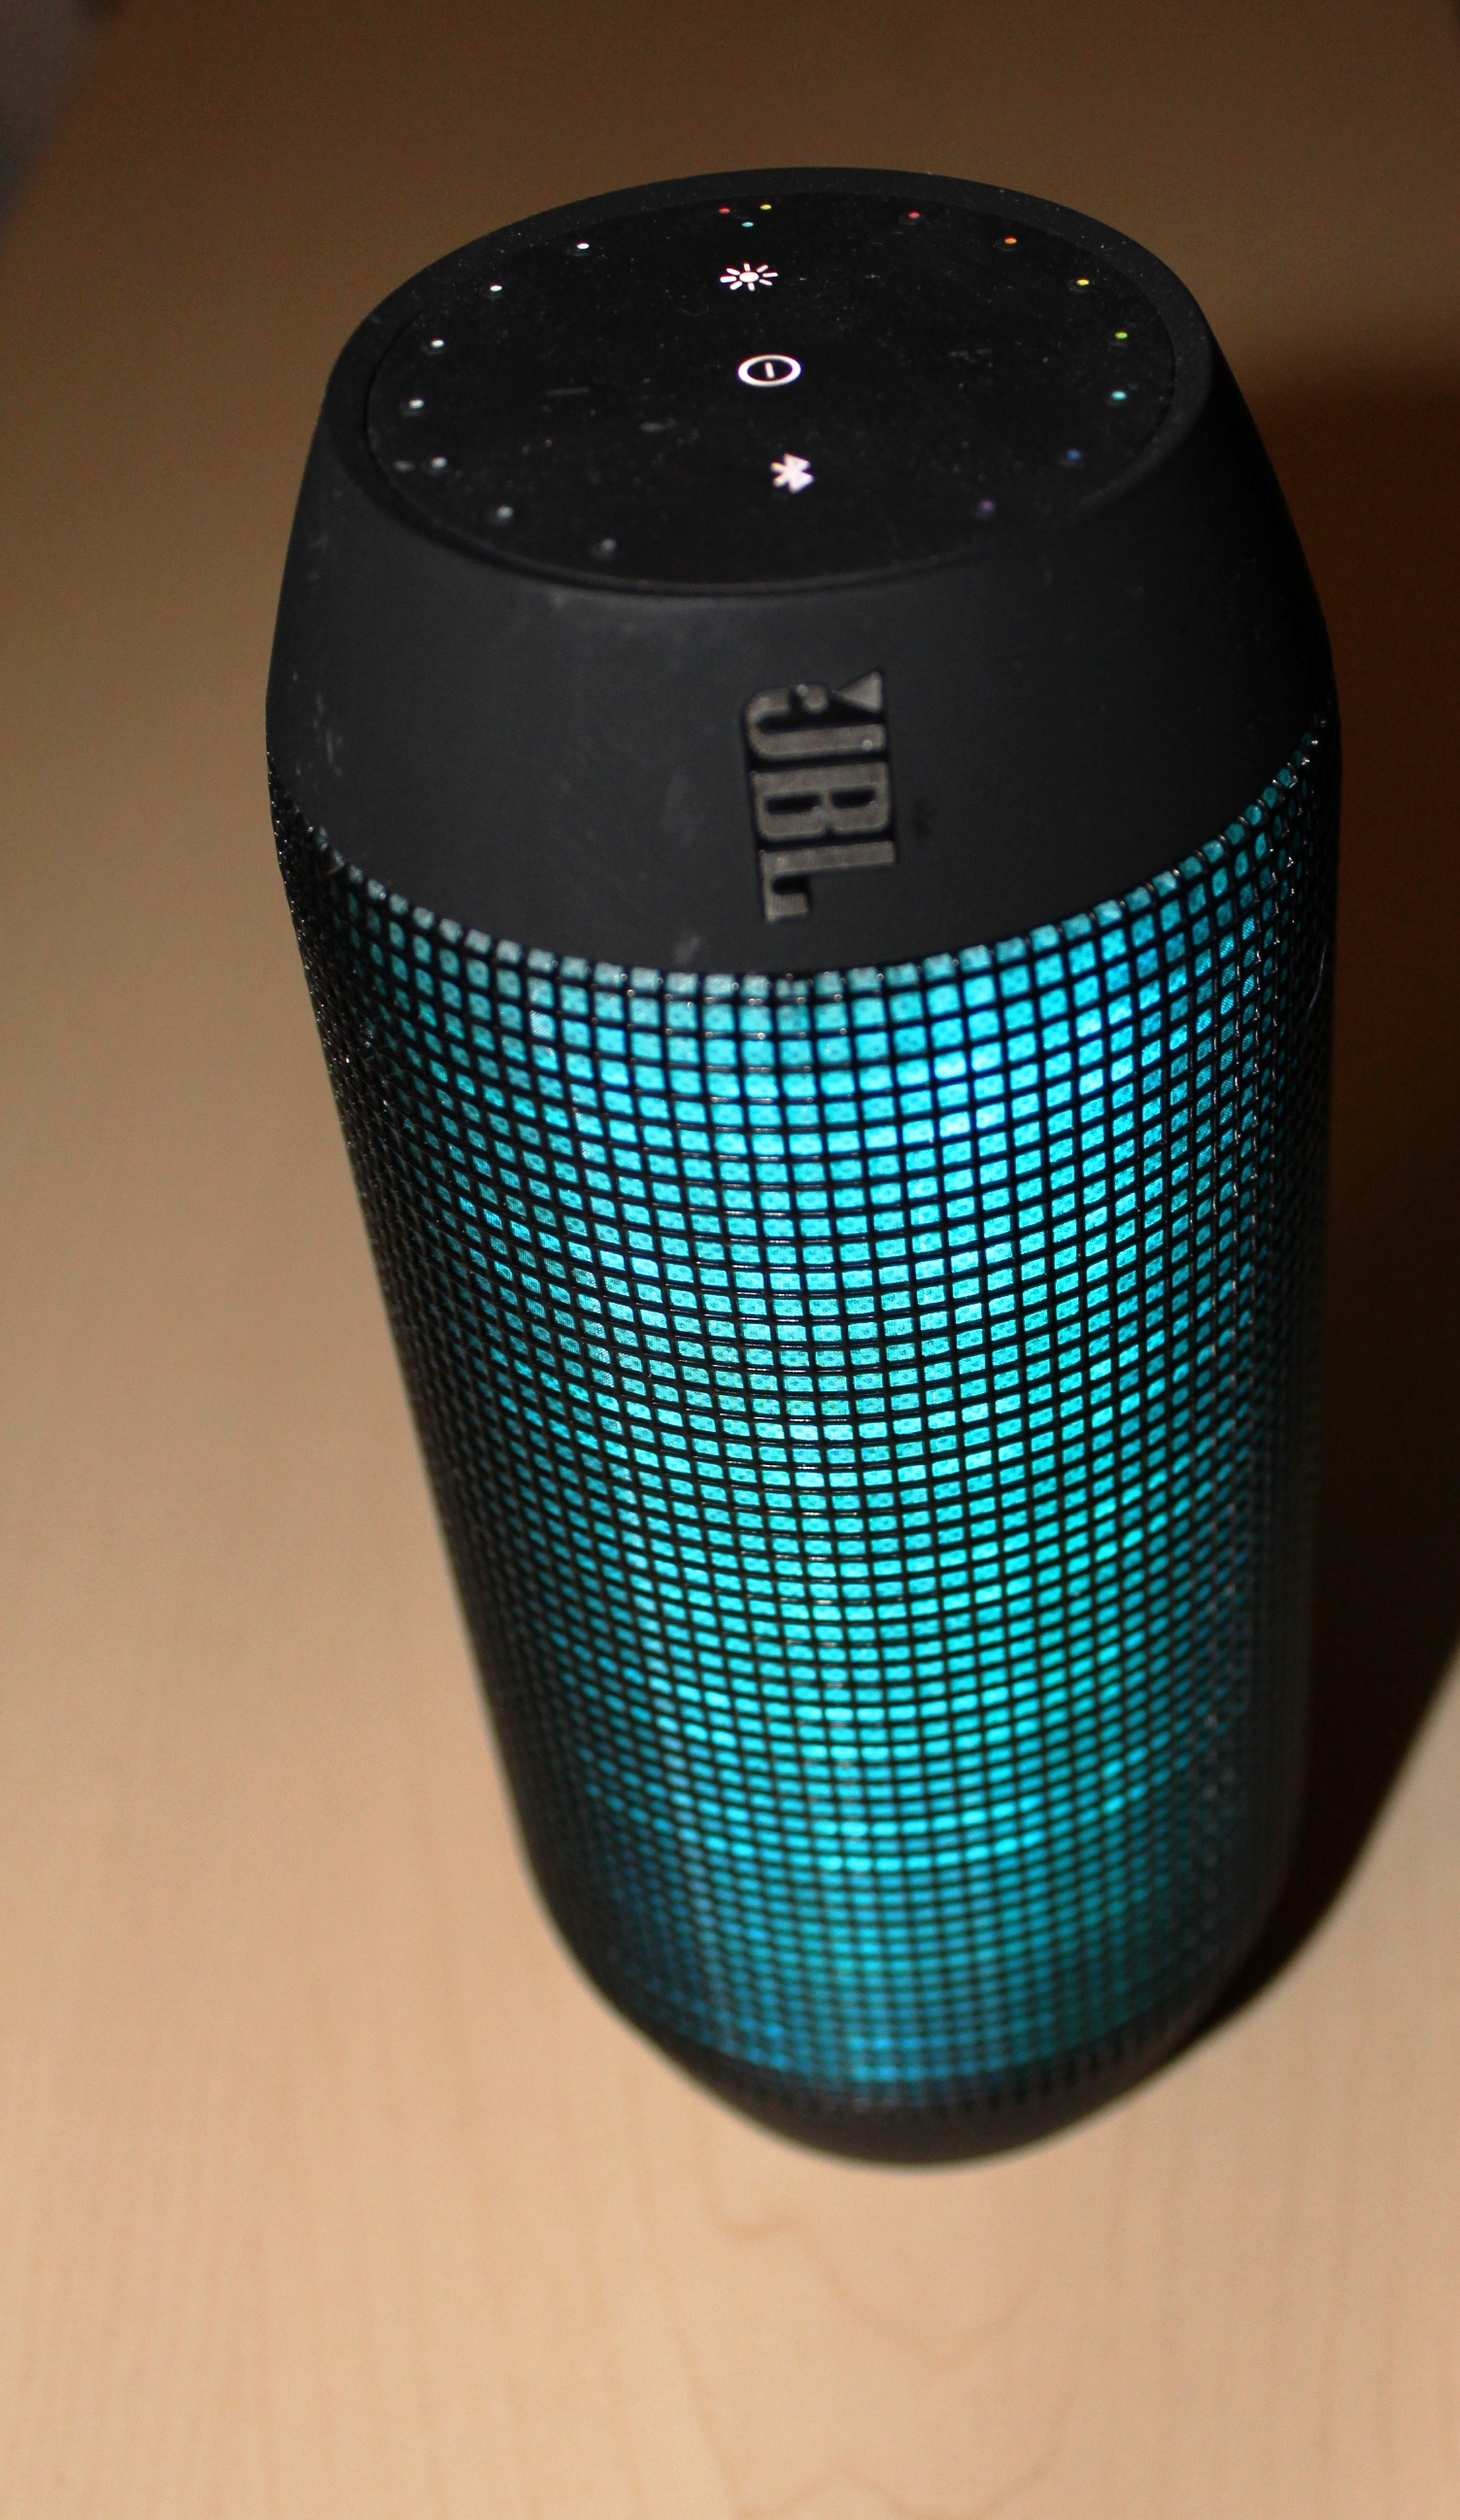 JBL Pulse Portable Bluetooth Speaker Review - #HearTheTruth